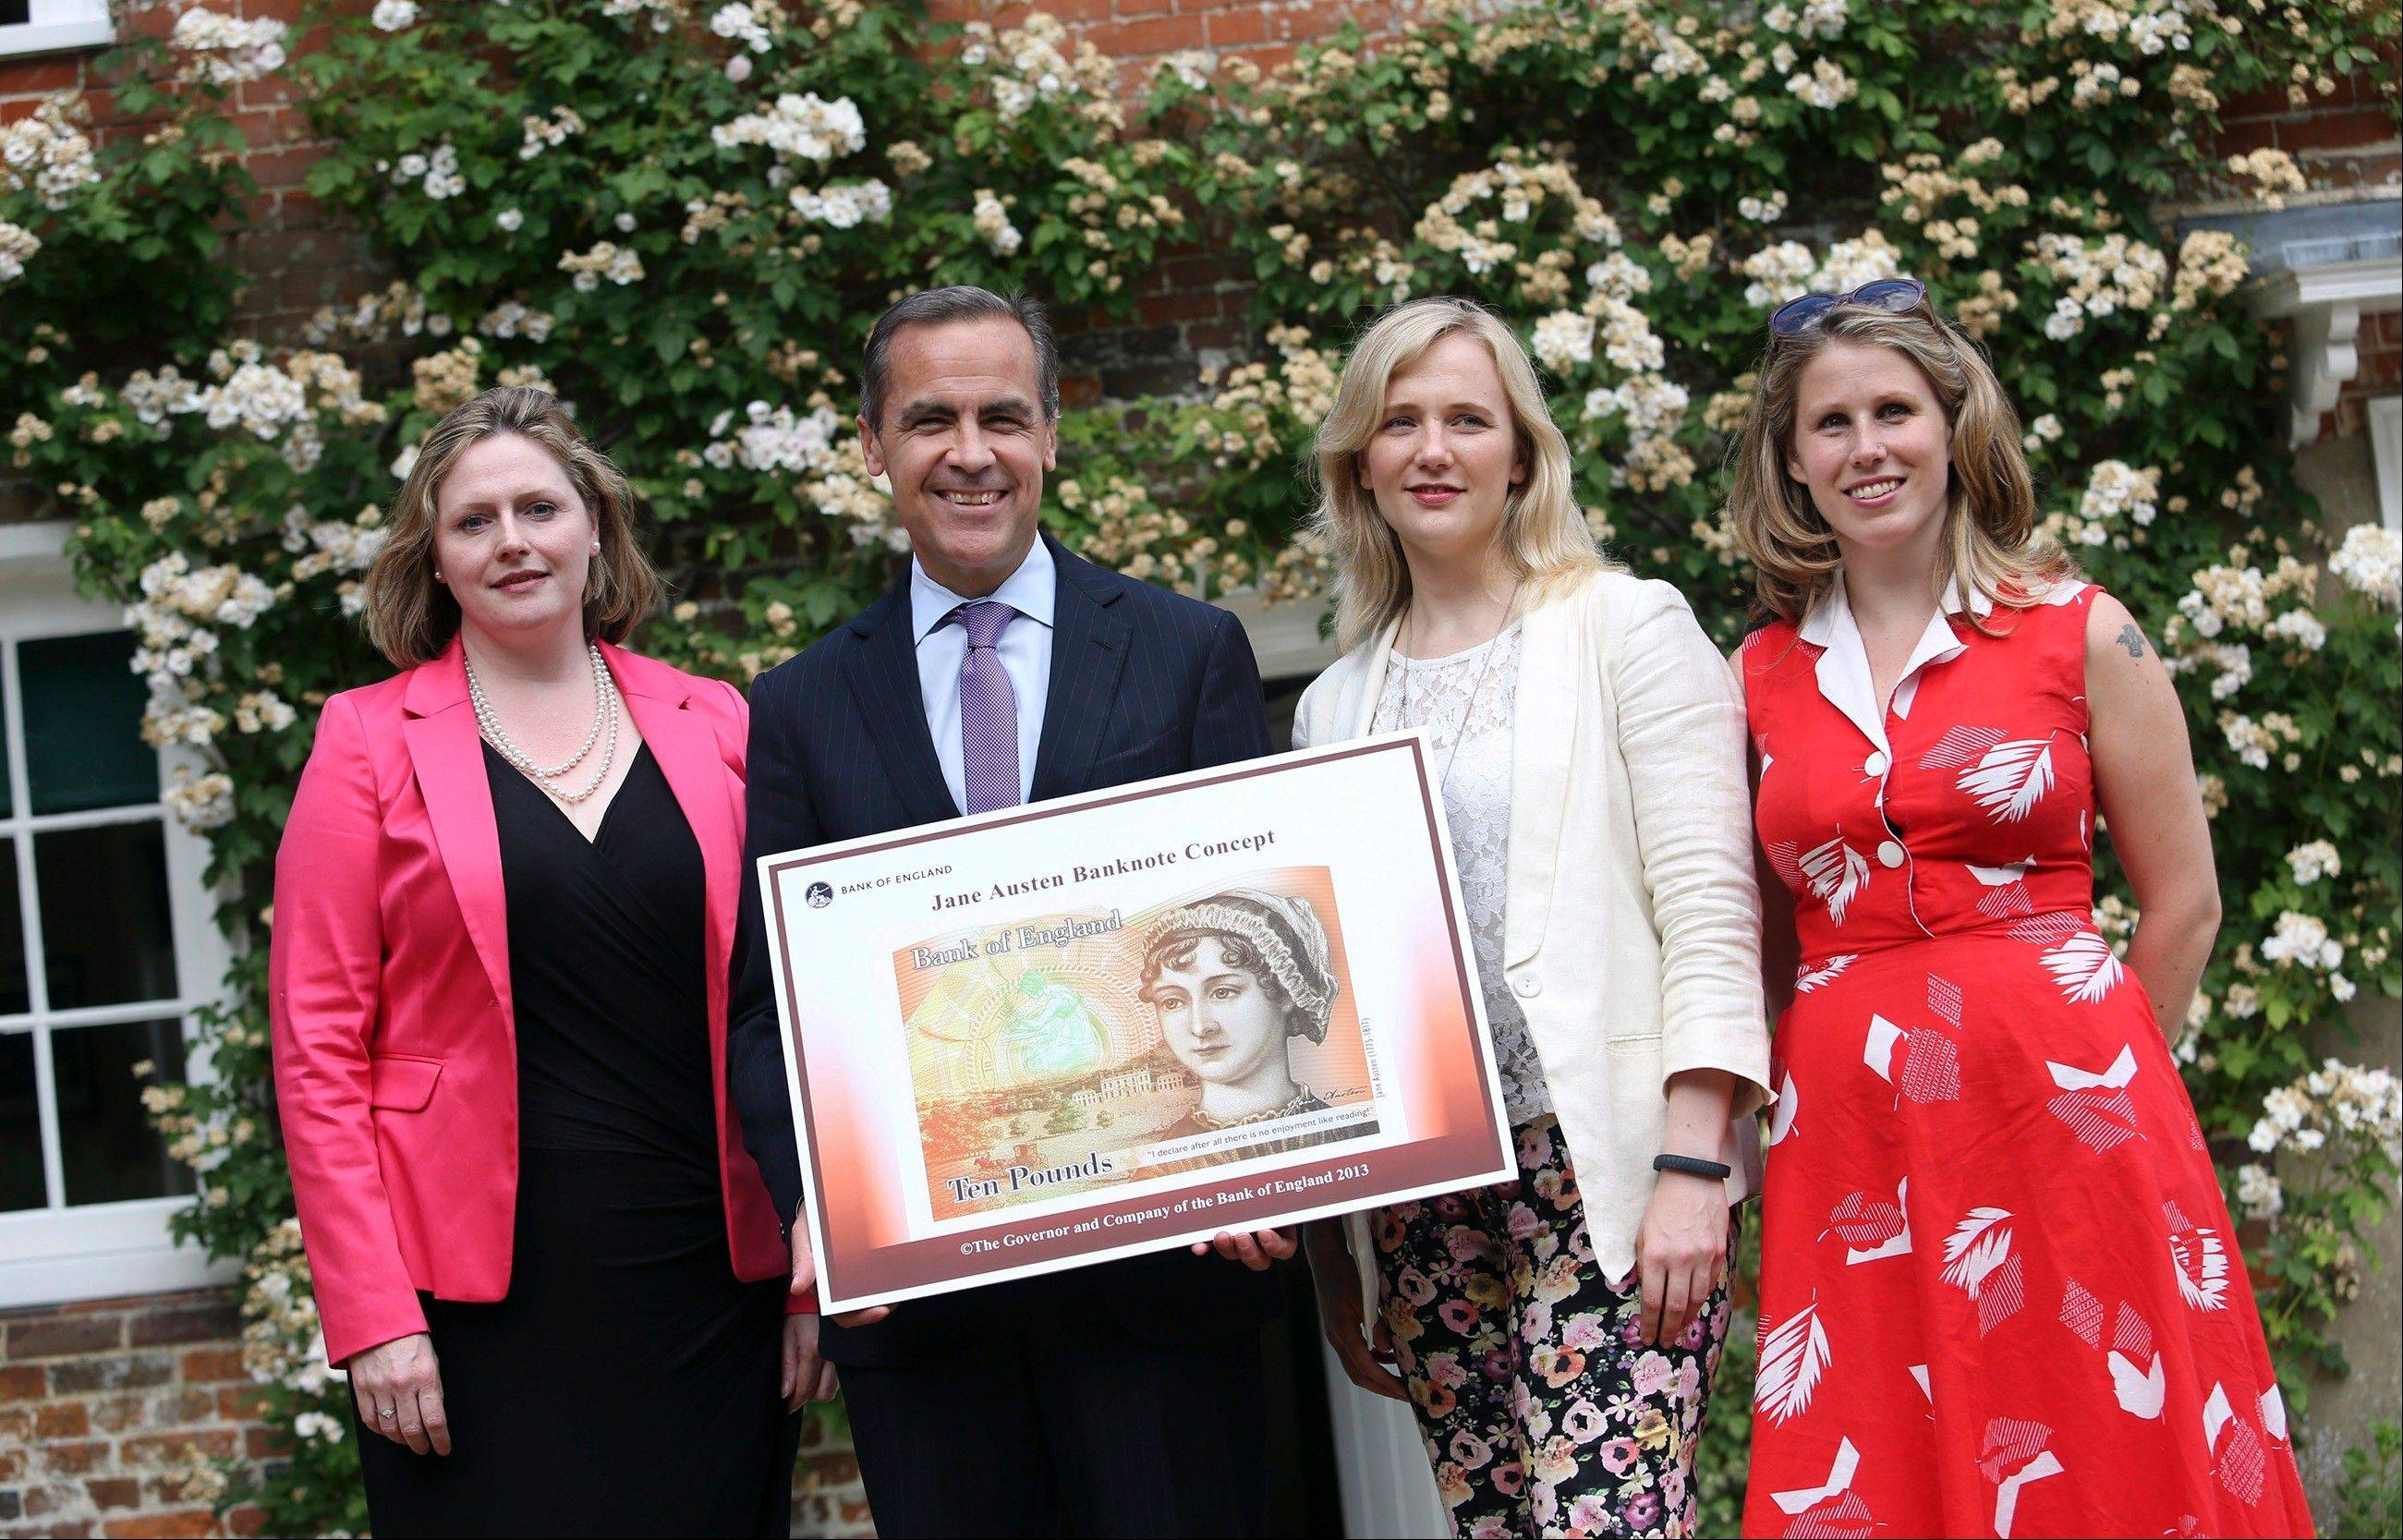 Caroline Criado-Perez, right, poses with a concept design for a 10-pound note adorned with an image of author Jane Austen. From left: Mary Macleod, conservative member of Parliament; Bank of England Governor Mark Carney; Stella Creasy, Labor member of Parliament.